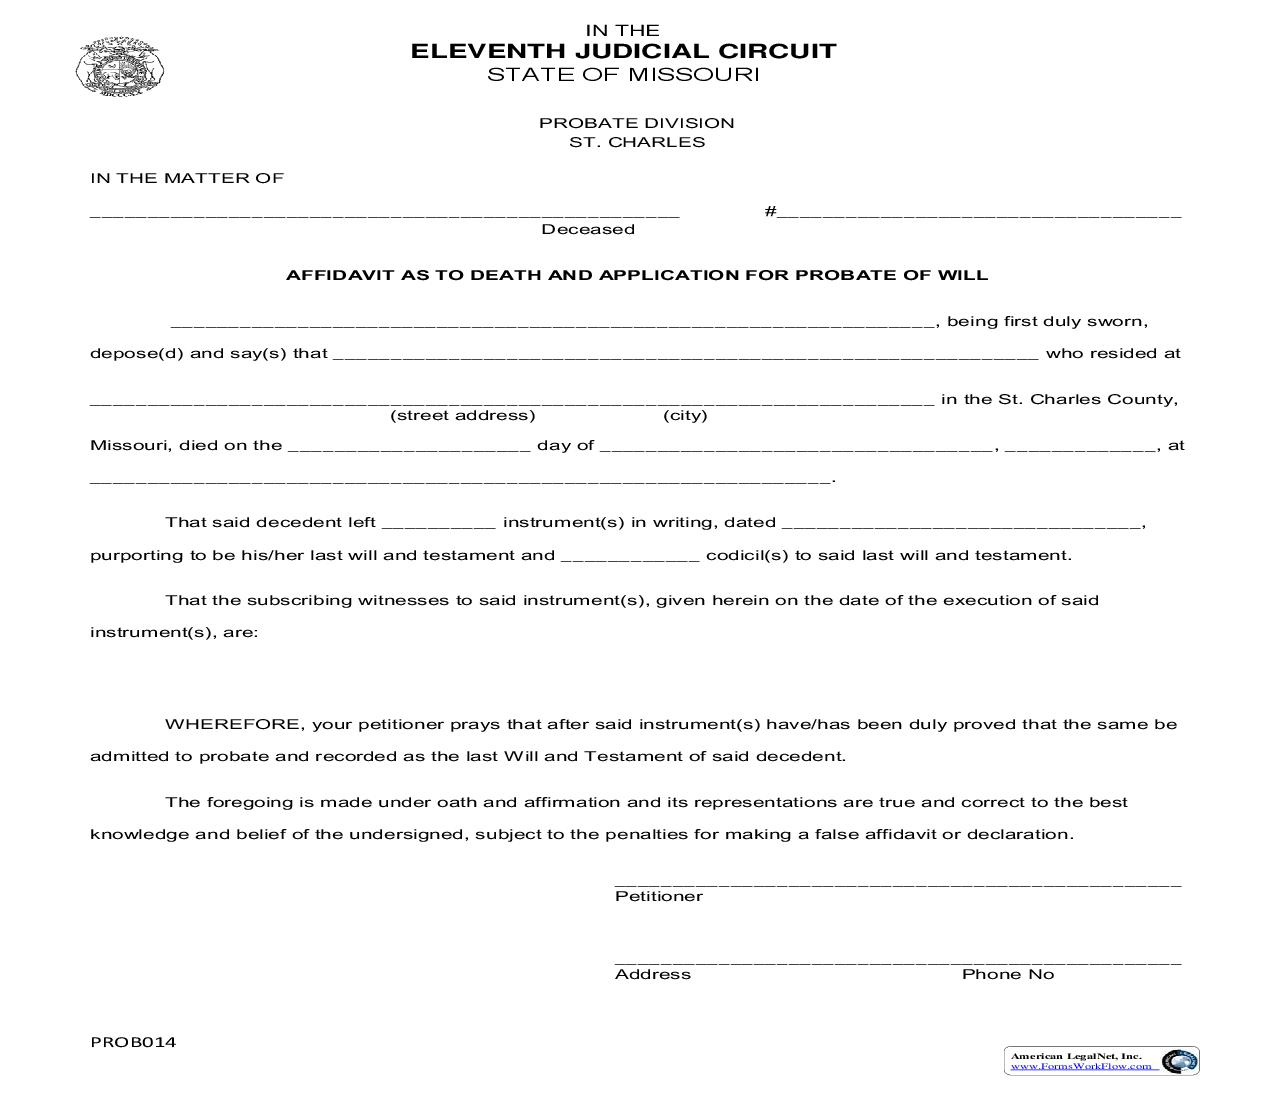 Affidavit As To Death And Application For Probate Of Will | Pdf Fpdf Doc Docx | Missouri